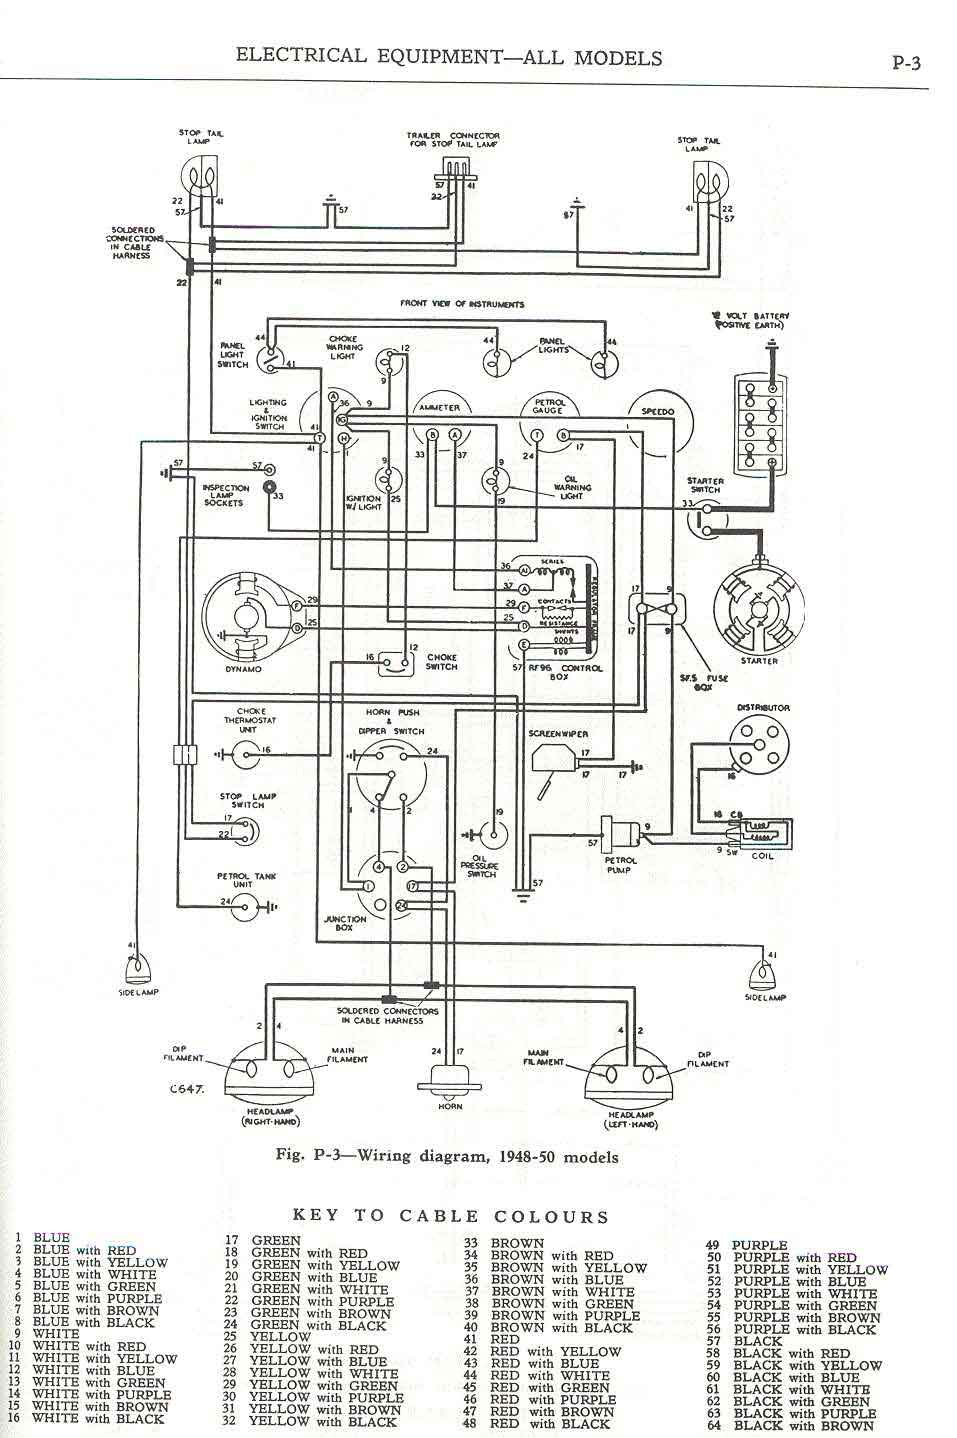 P3 land rover faq repair & maintenance series electrical rover 45 wiring diagram at edmiracle.co